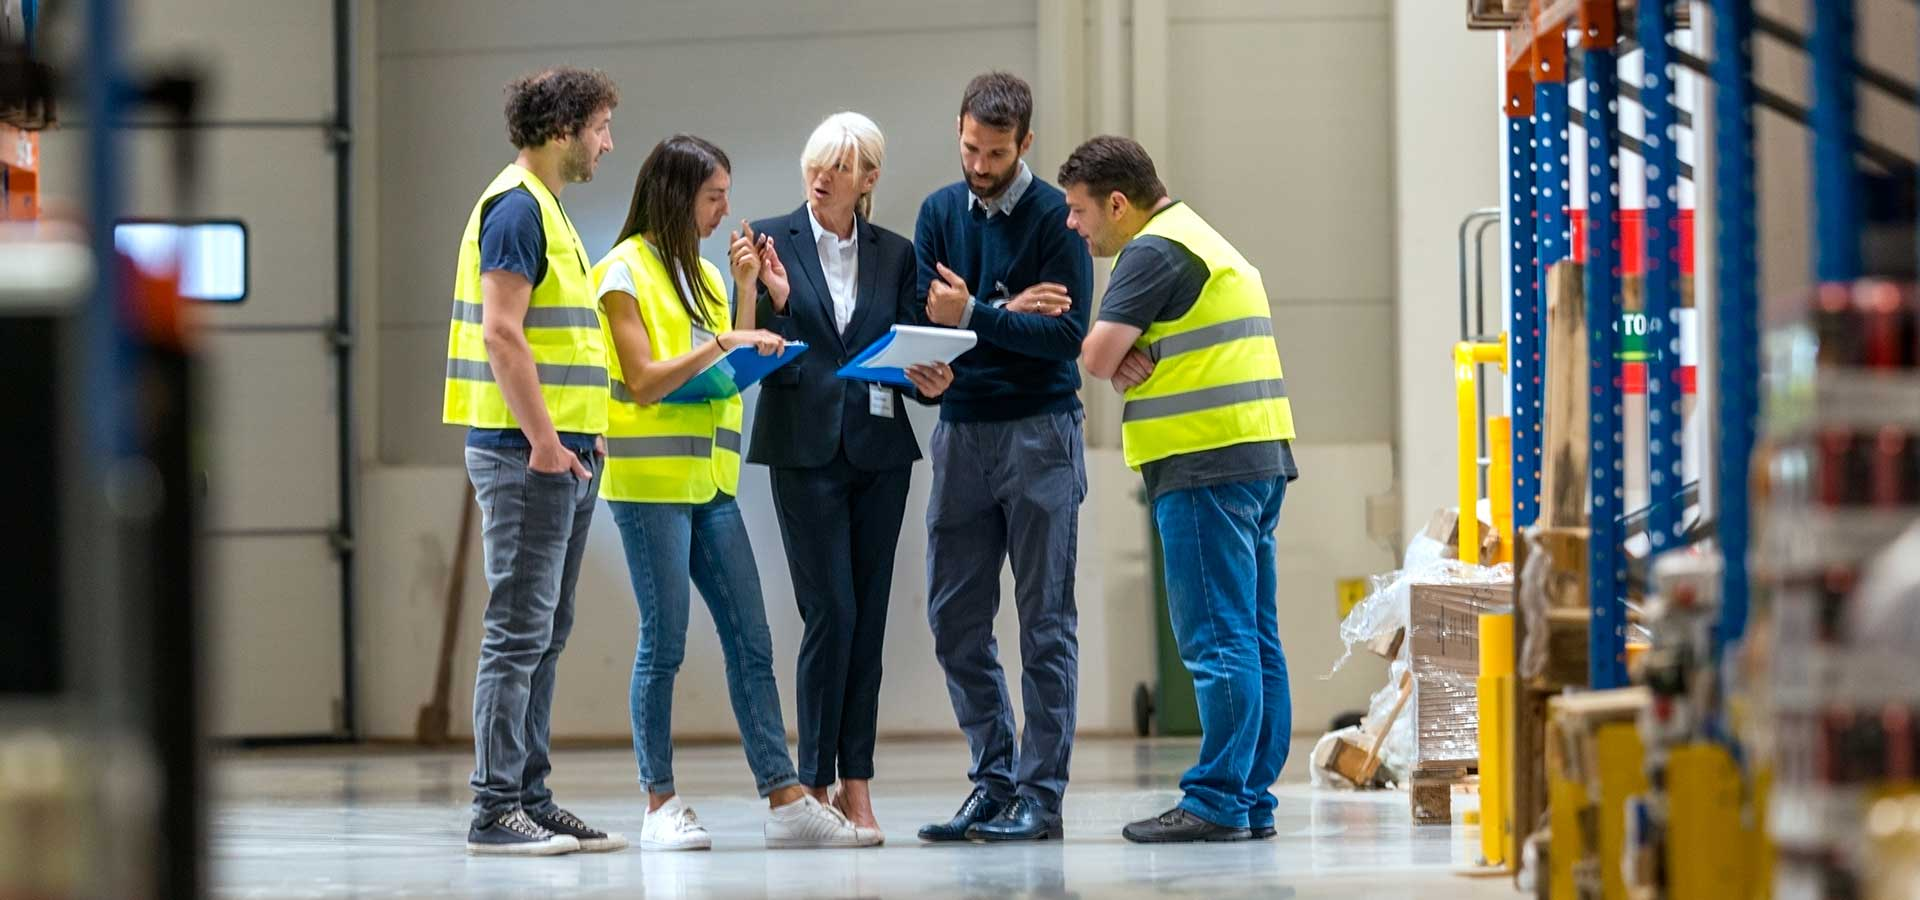 Warehouse Collaboration for Improving Processes and Efficiency